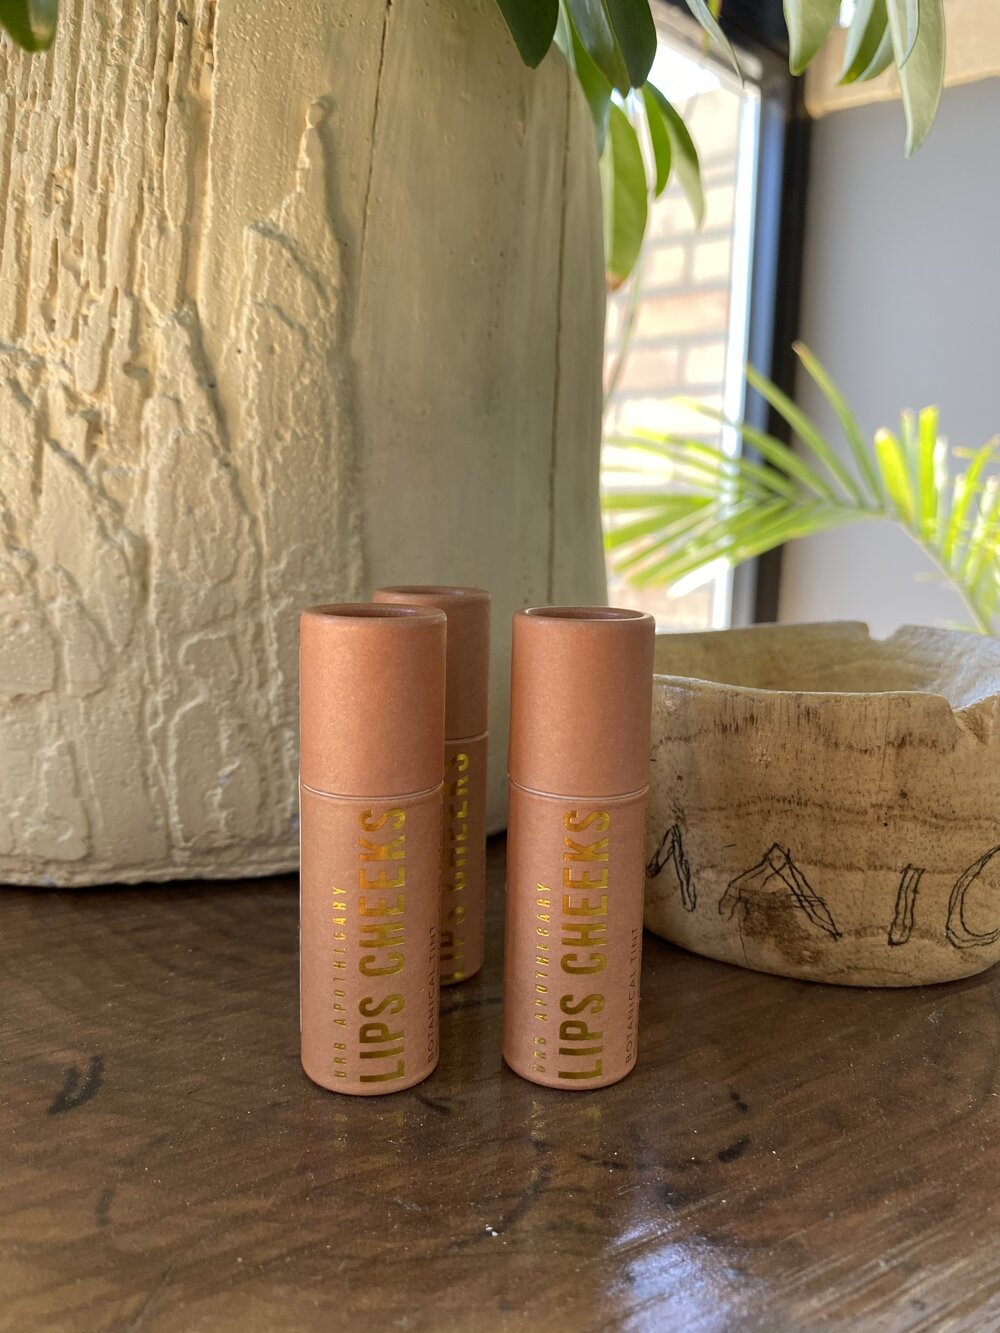 Lips Cheeks Tint Stick - Urb Apothecary